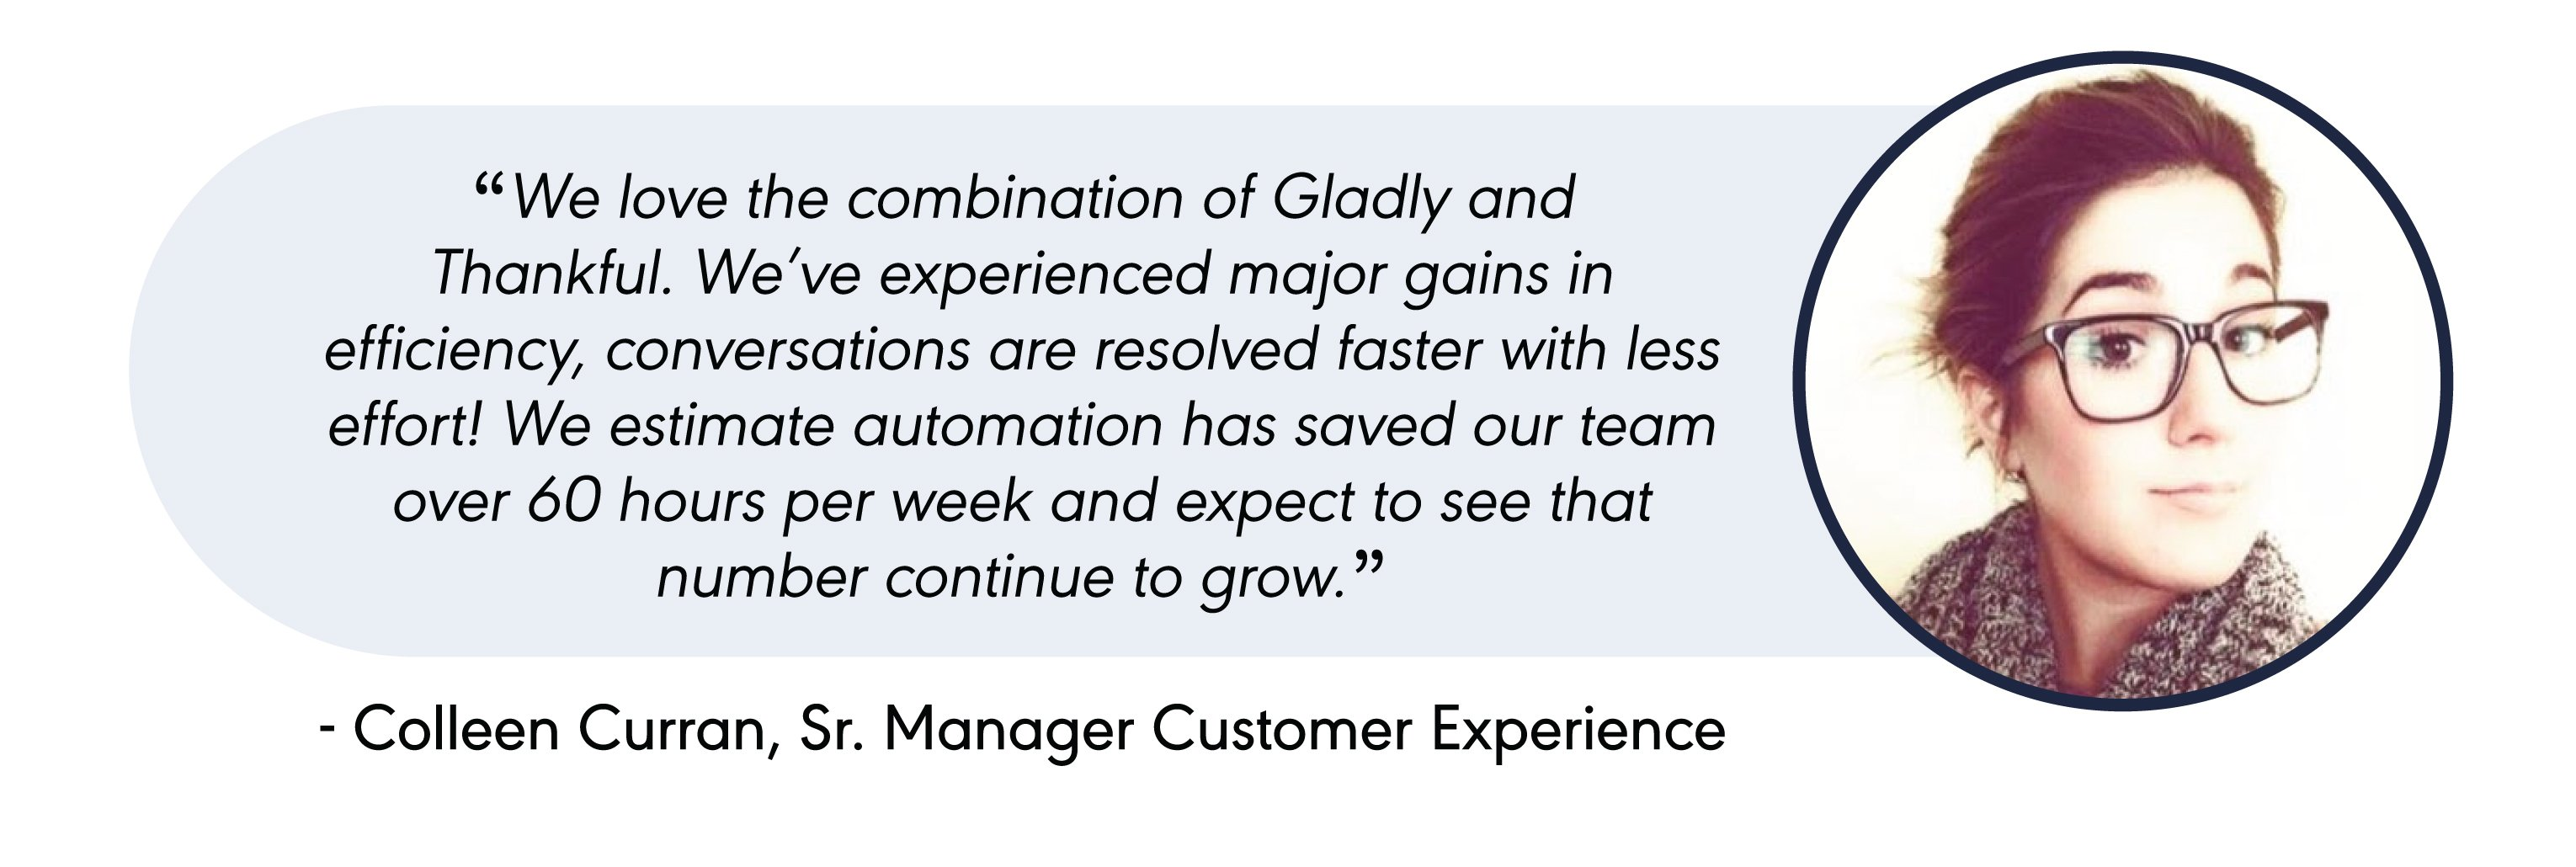 """""""We love the combination of Gladly and Thankful. We've experienced major gains in efficiency, conversations are resolved faster with less effort! We estimate automation has saved our team over 60 hours per week and expect to see that number continue to grow."""""""